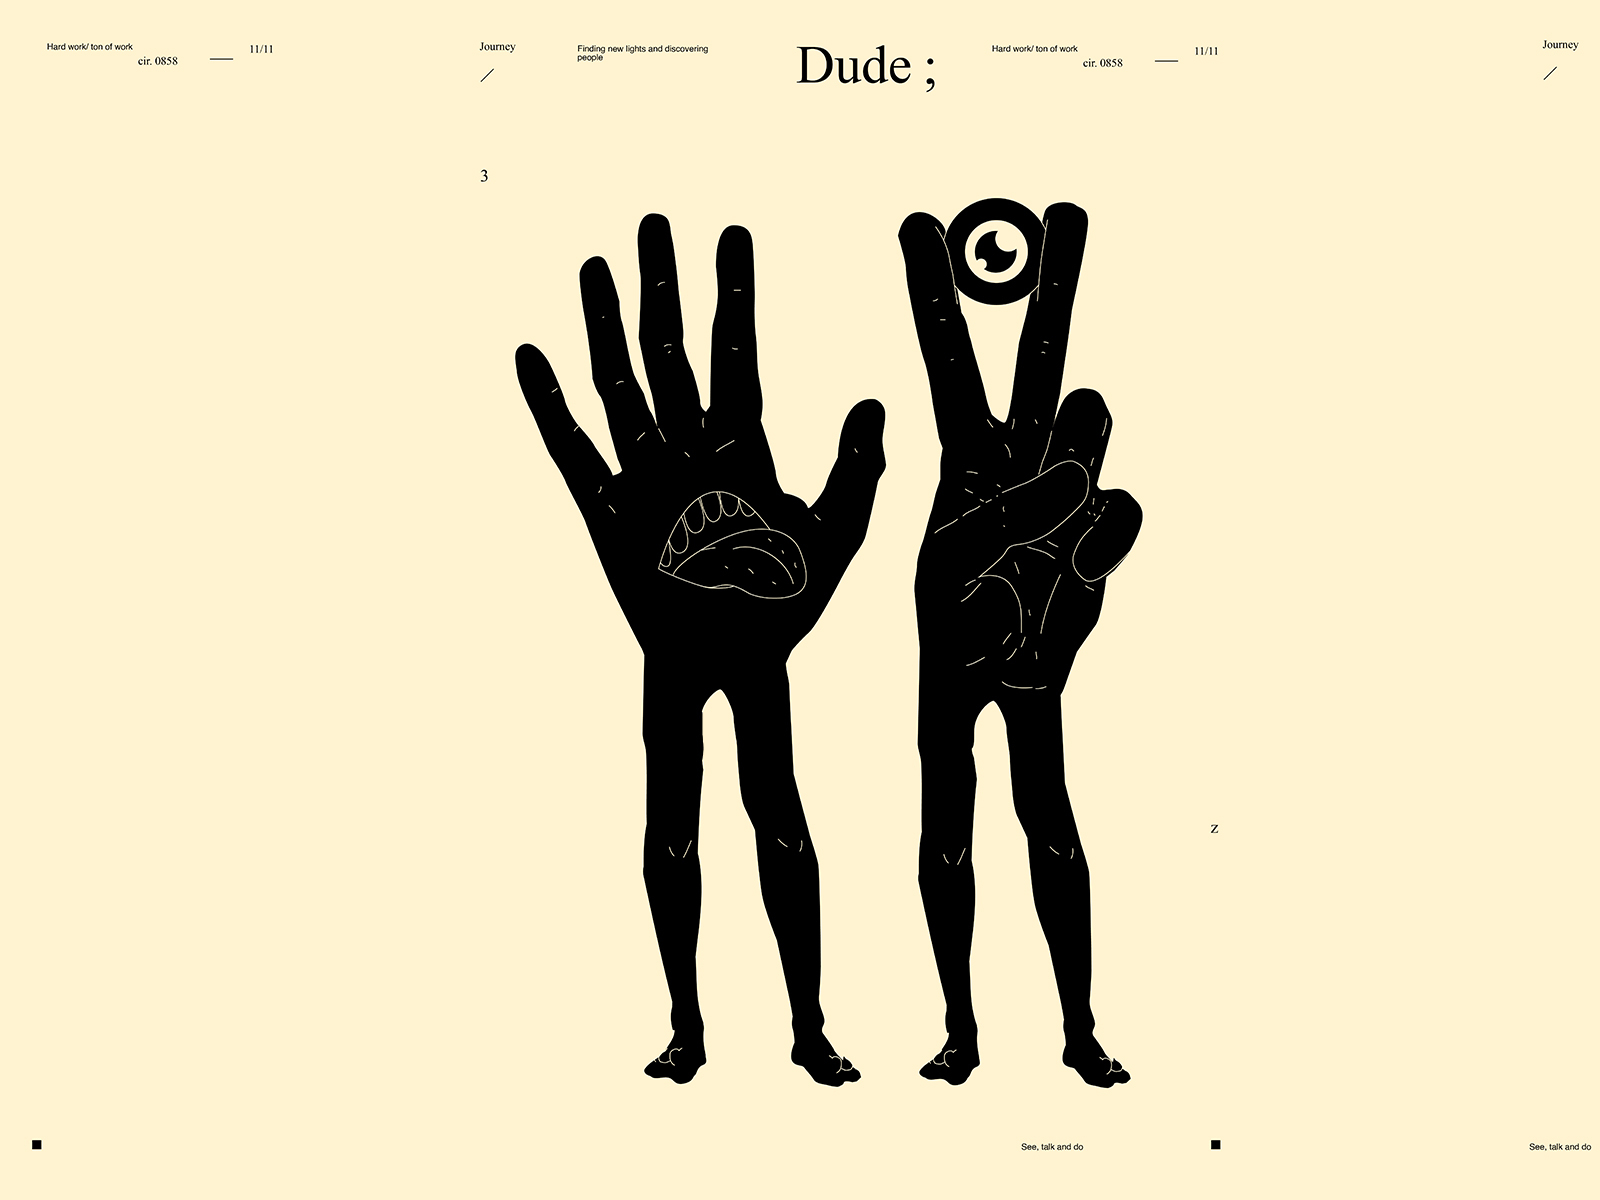 Dude dual meaning conceptual illustration see talk mouth illustration mouth eye illustration eye hand illustration poster art lines poster laconic illustration composition abstract minimal